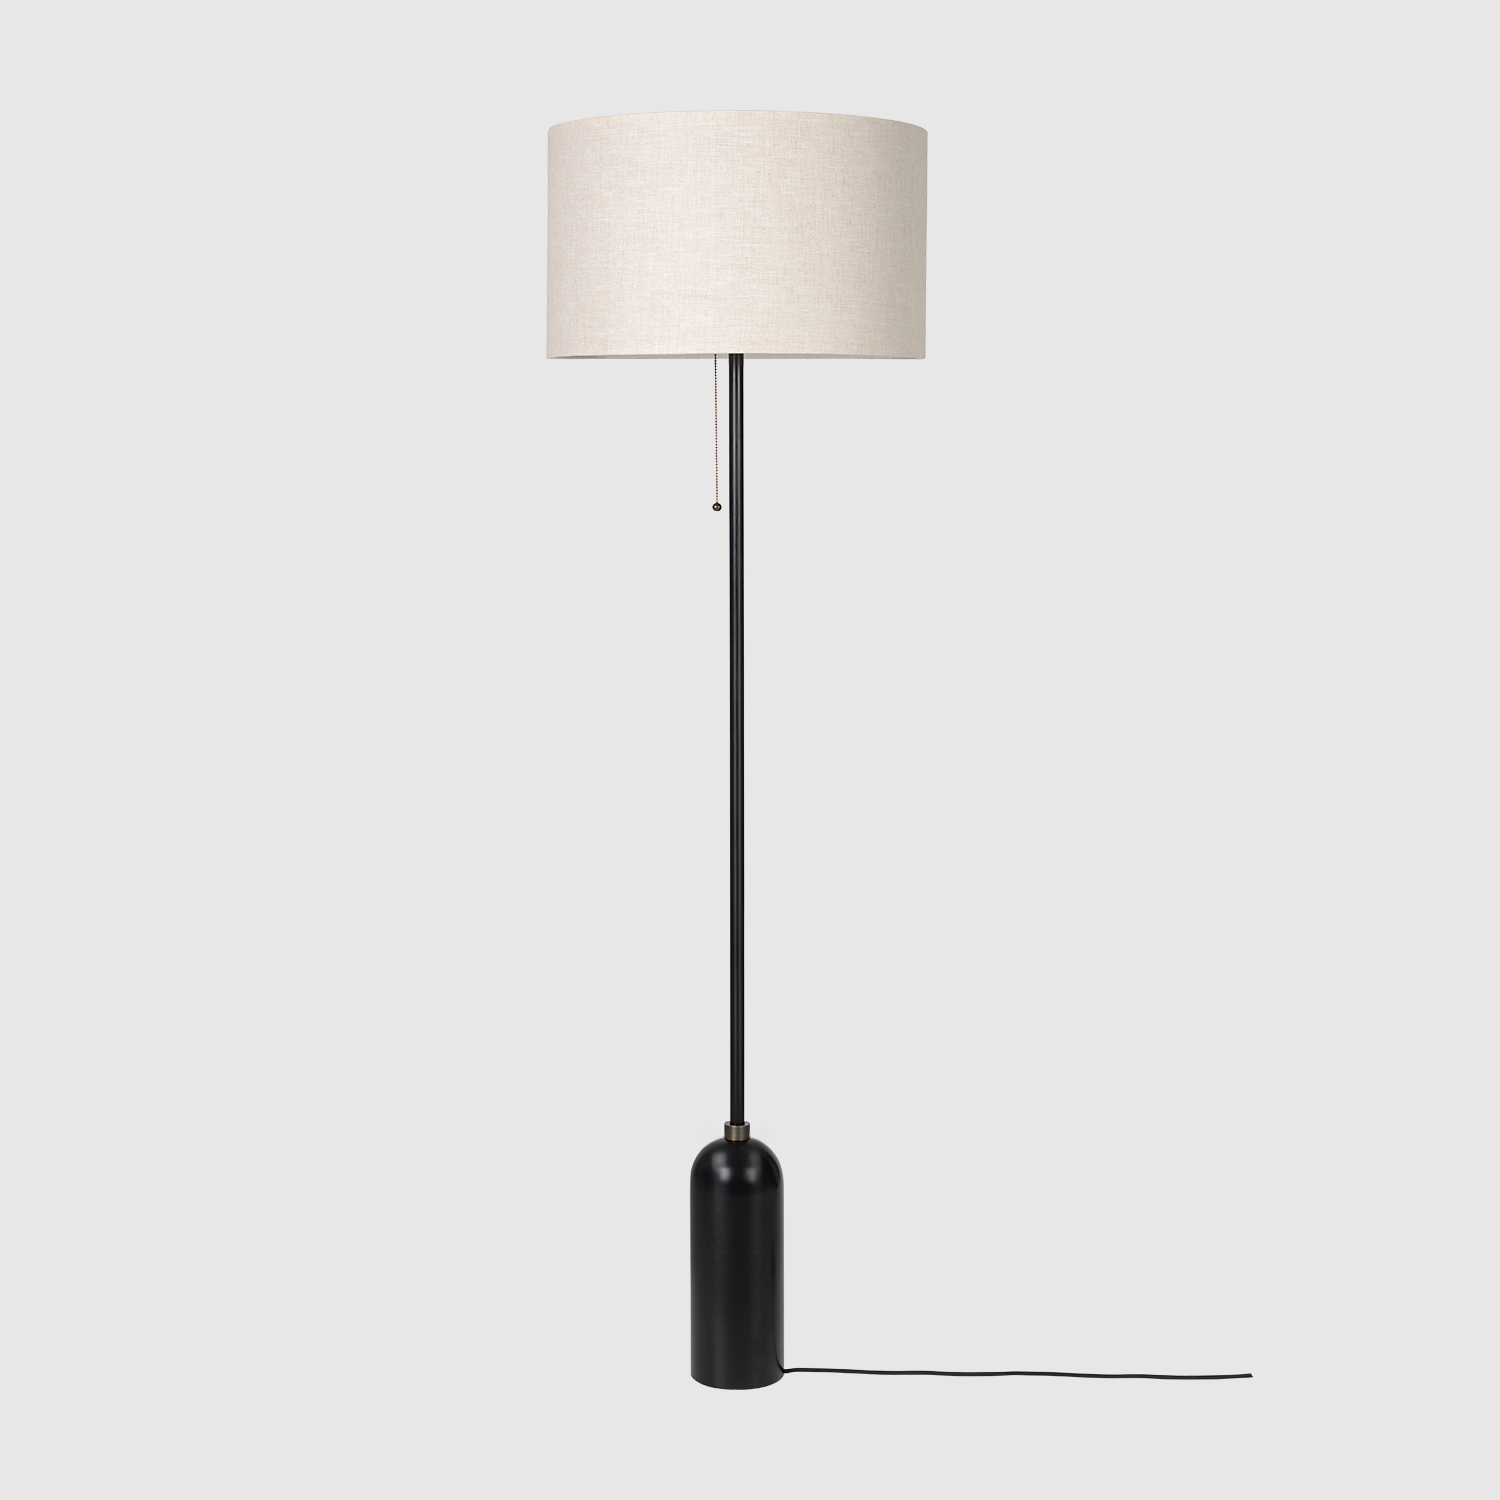 Gravity Floor Lamp